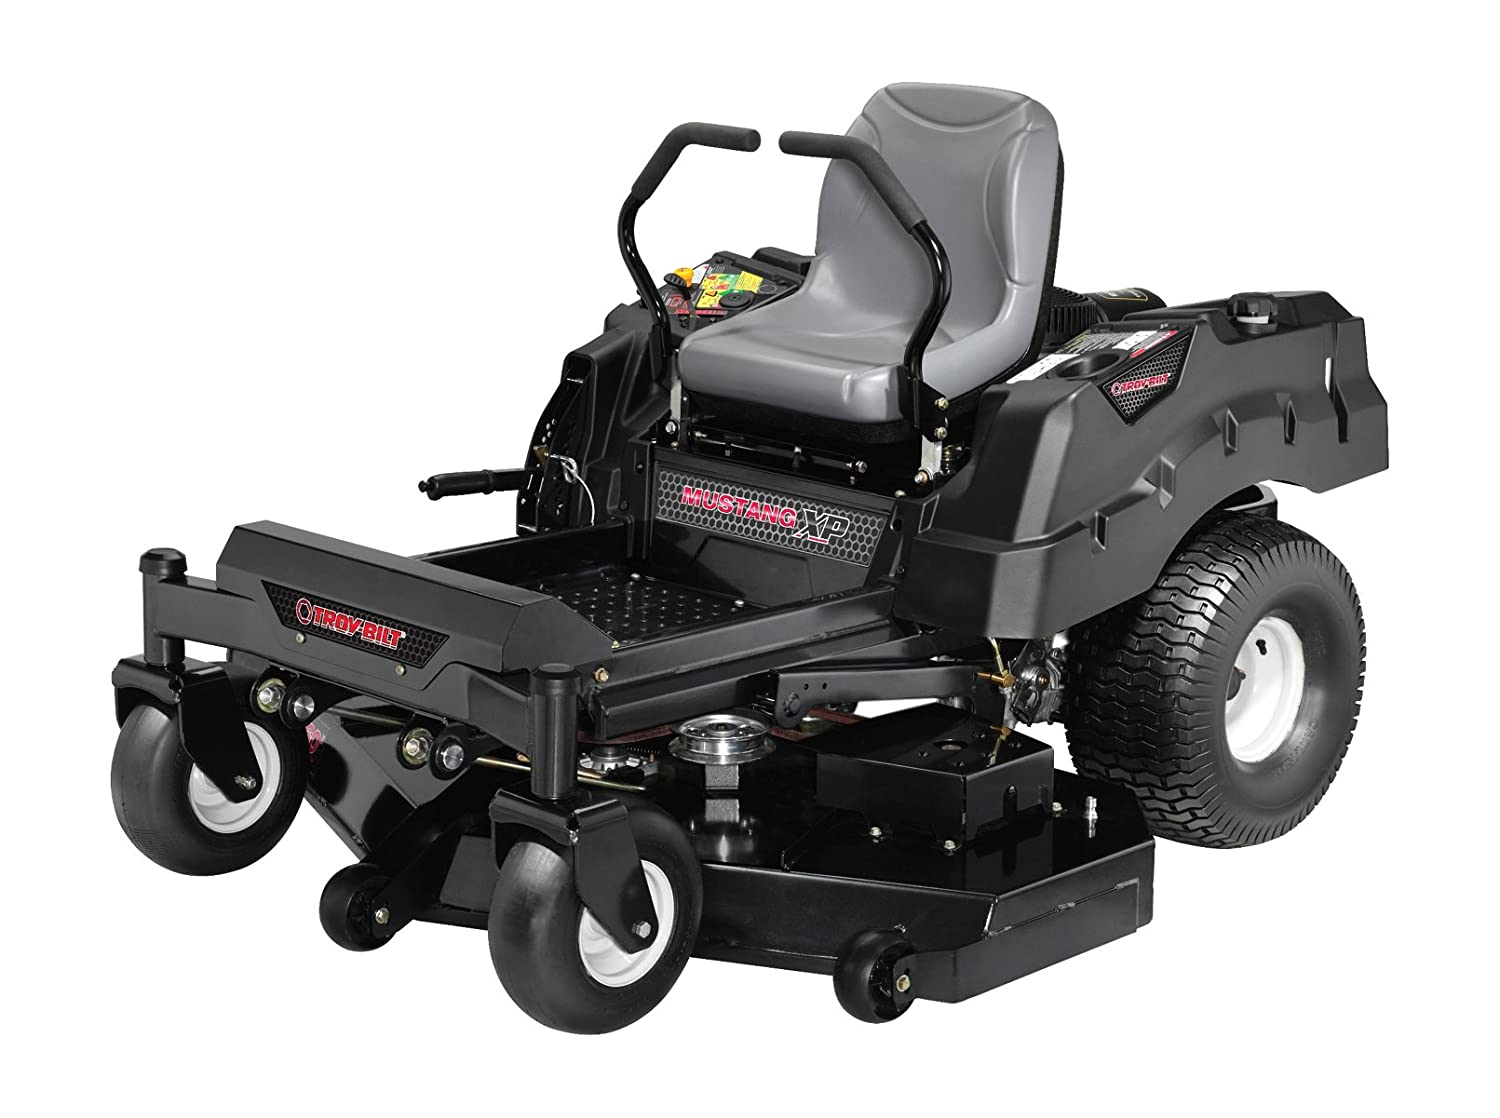 Troy-Bilt XP 60-Inch 25HP Zero Turn Mower